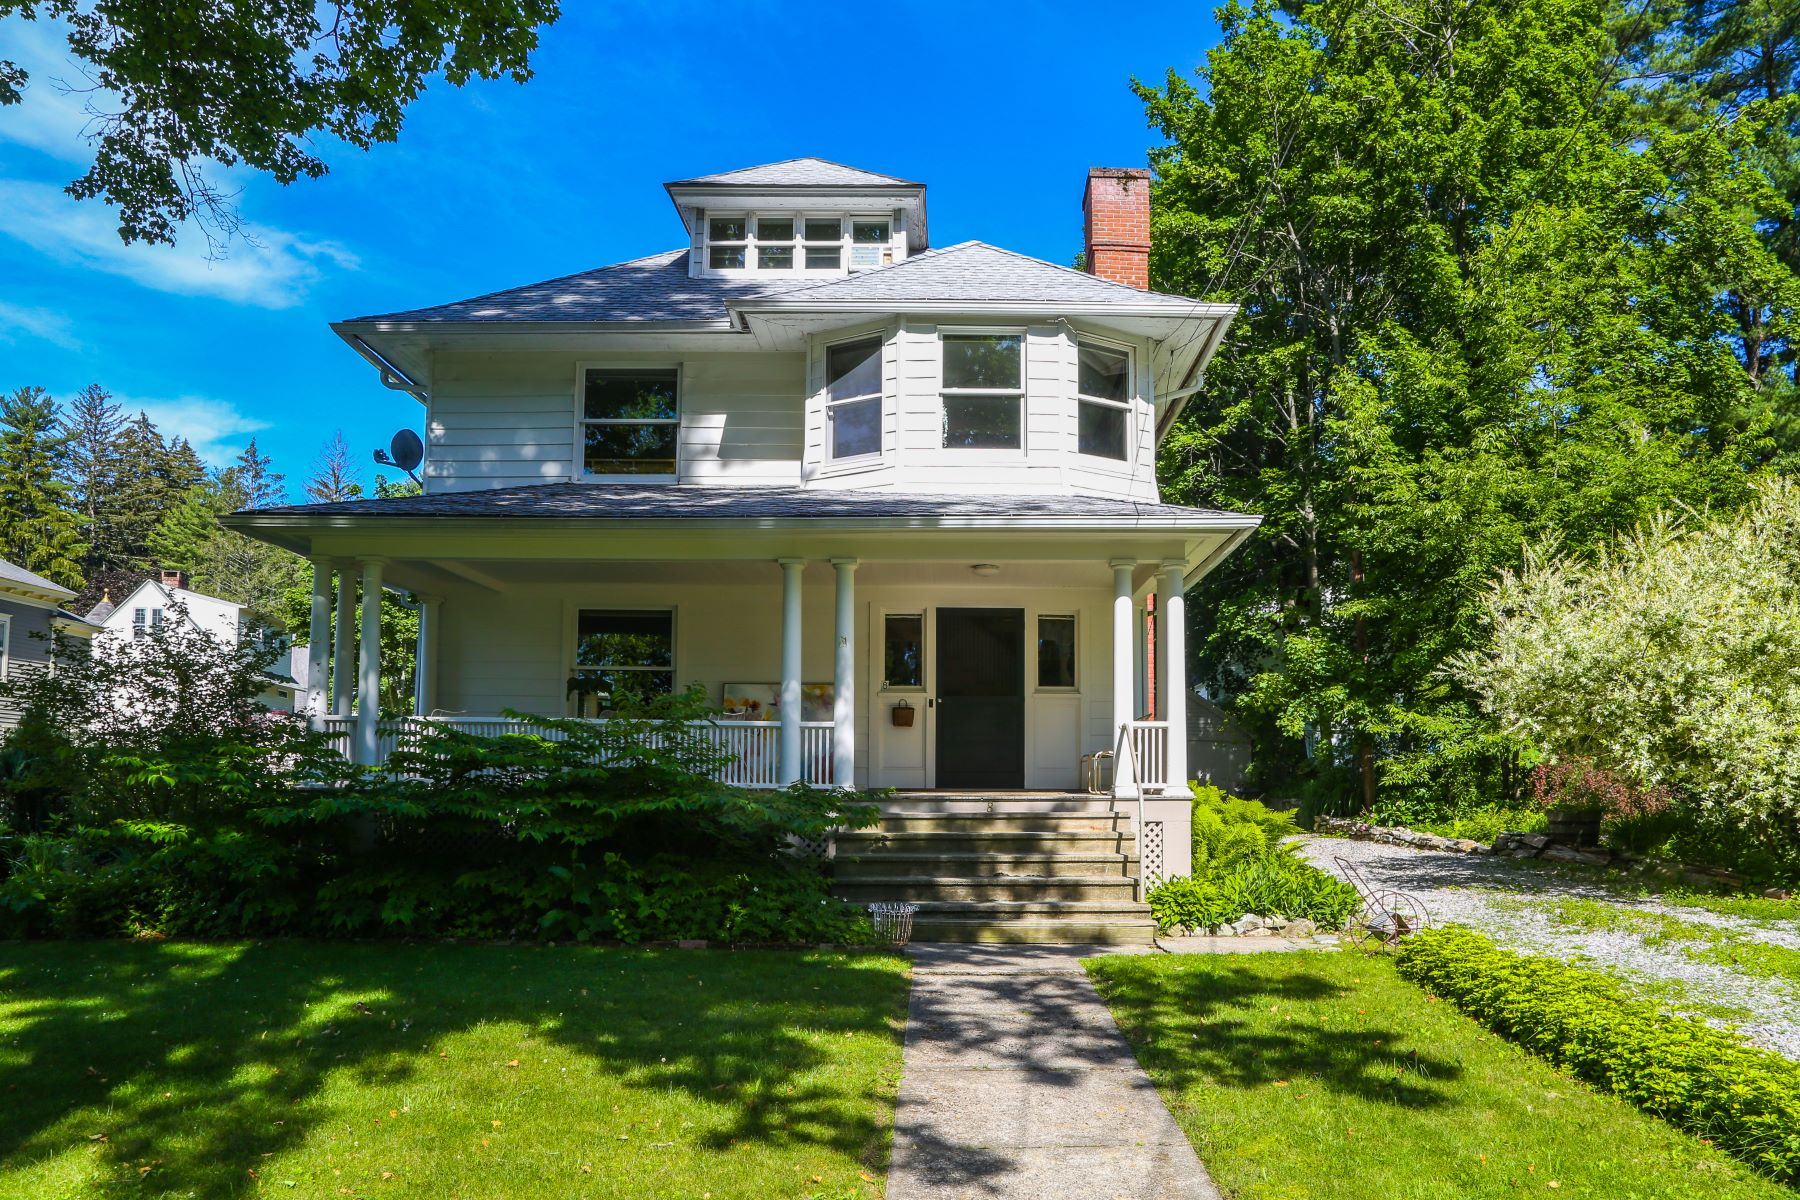 واحد منزل الأسرة للـ Sale في Beautifully Maintained American Foursquare on The Hill 8 Oak St Great Barrington, Massachusetts 01230 United States